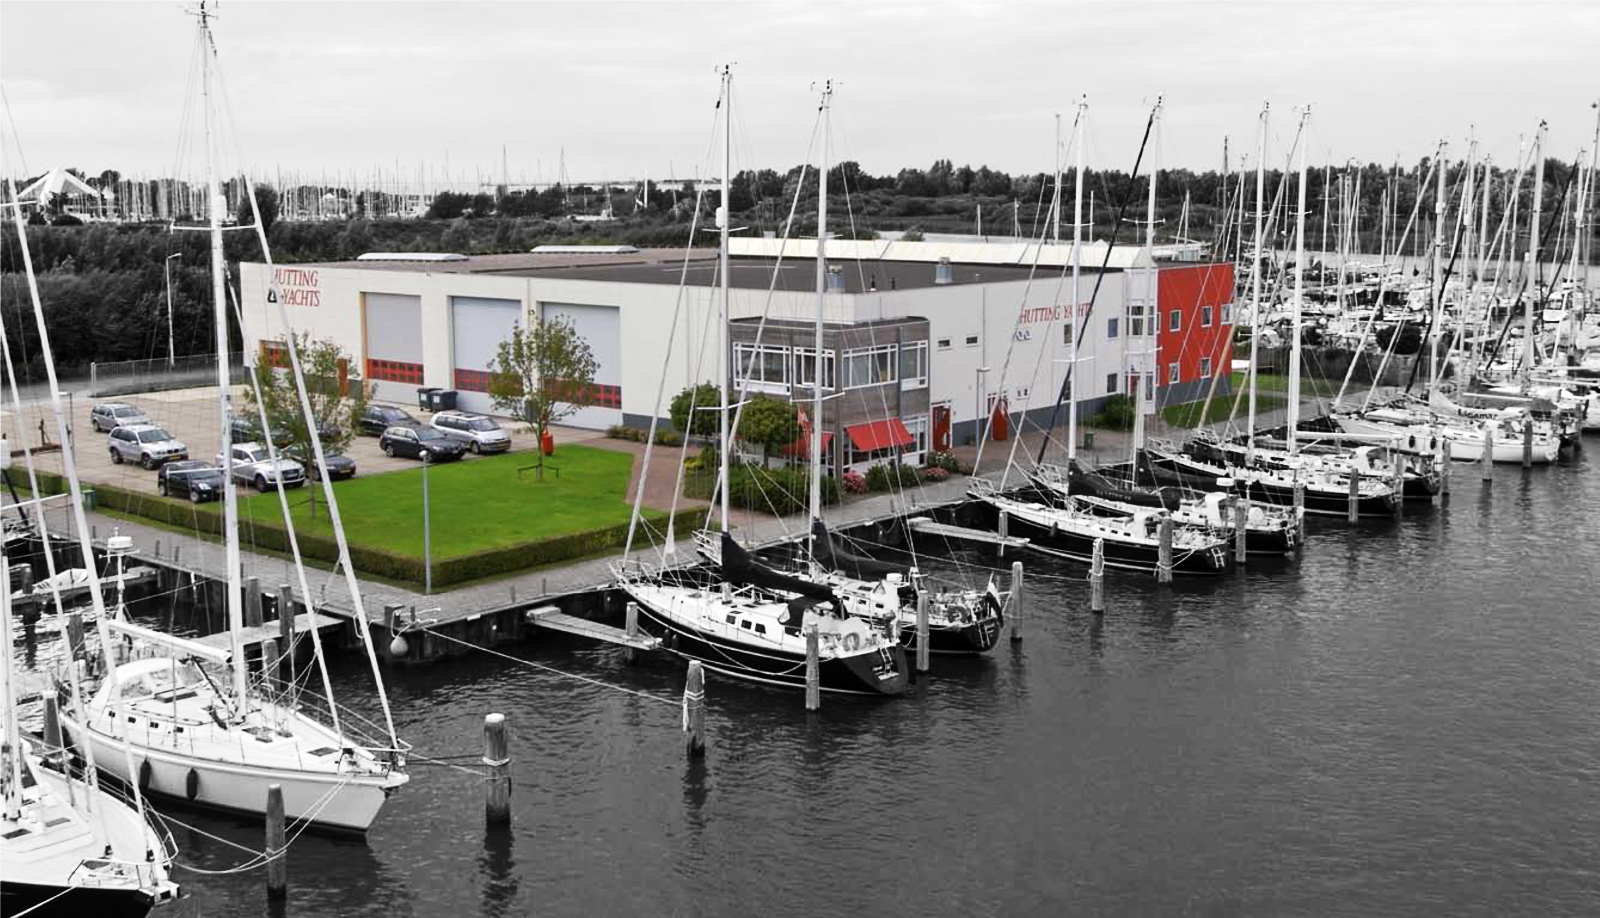 Hutting yachts werf